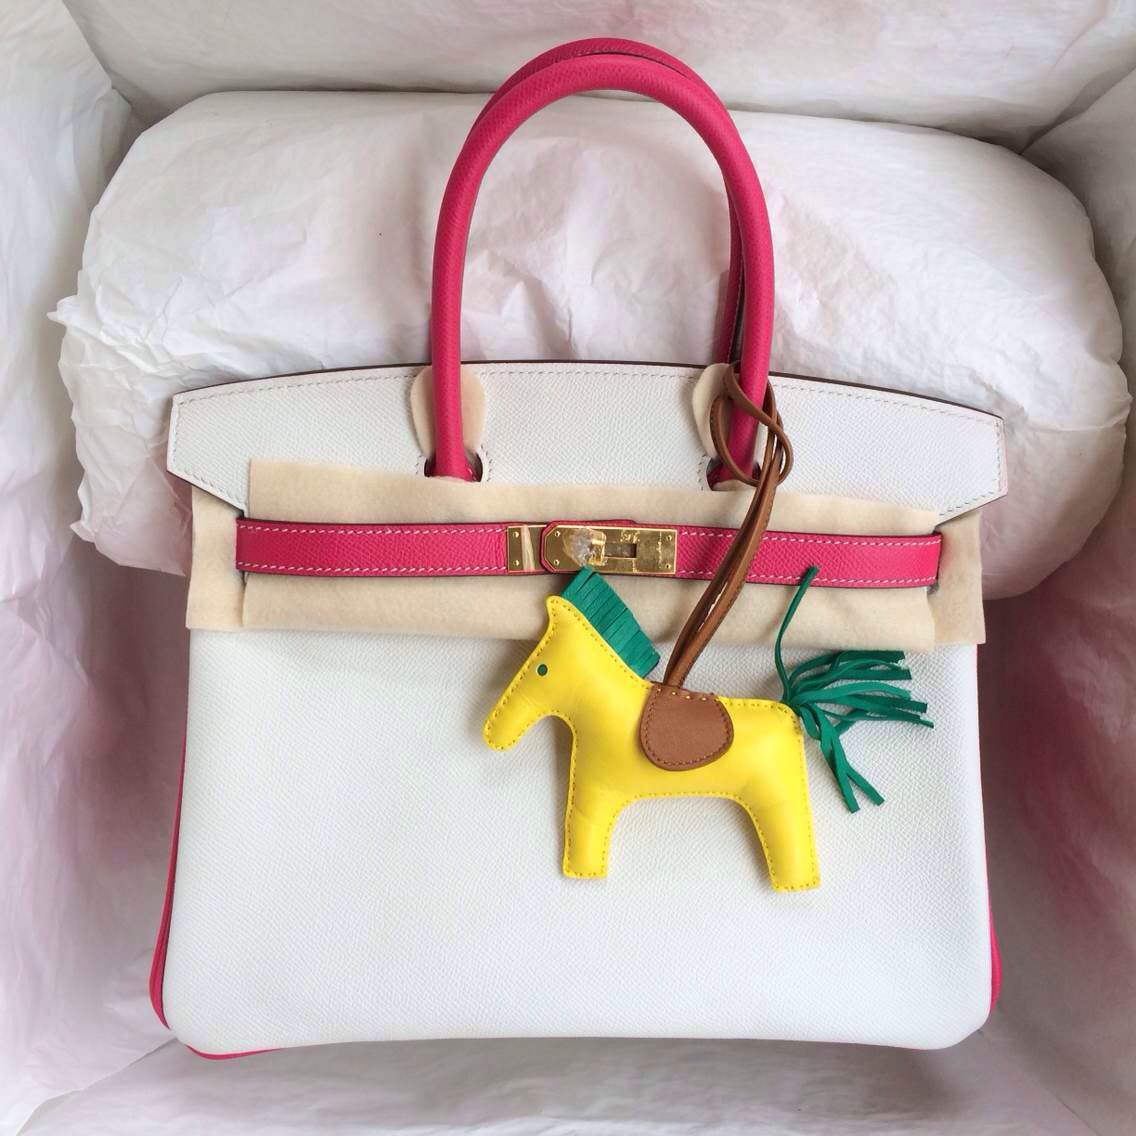 White/E5 Rose Tyrien France Epsom Leather Birkin Bag30cm Gold Hardware Wholesale